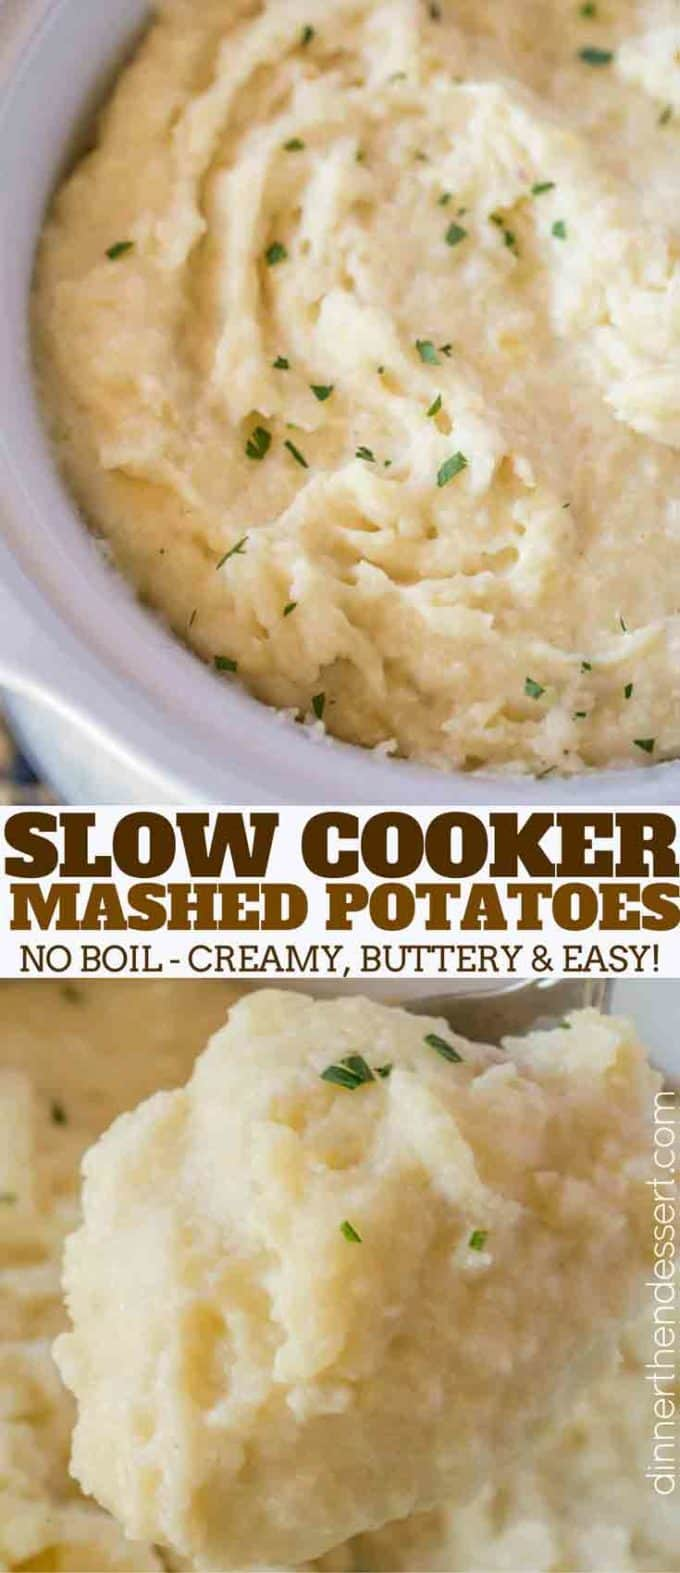 #SlowCooker #MashedPotatoes are an easy side dish (with no boiling required!) that you can make for the holidays and keep warm on the buffet without drying out!